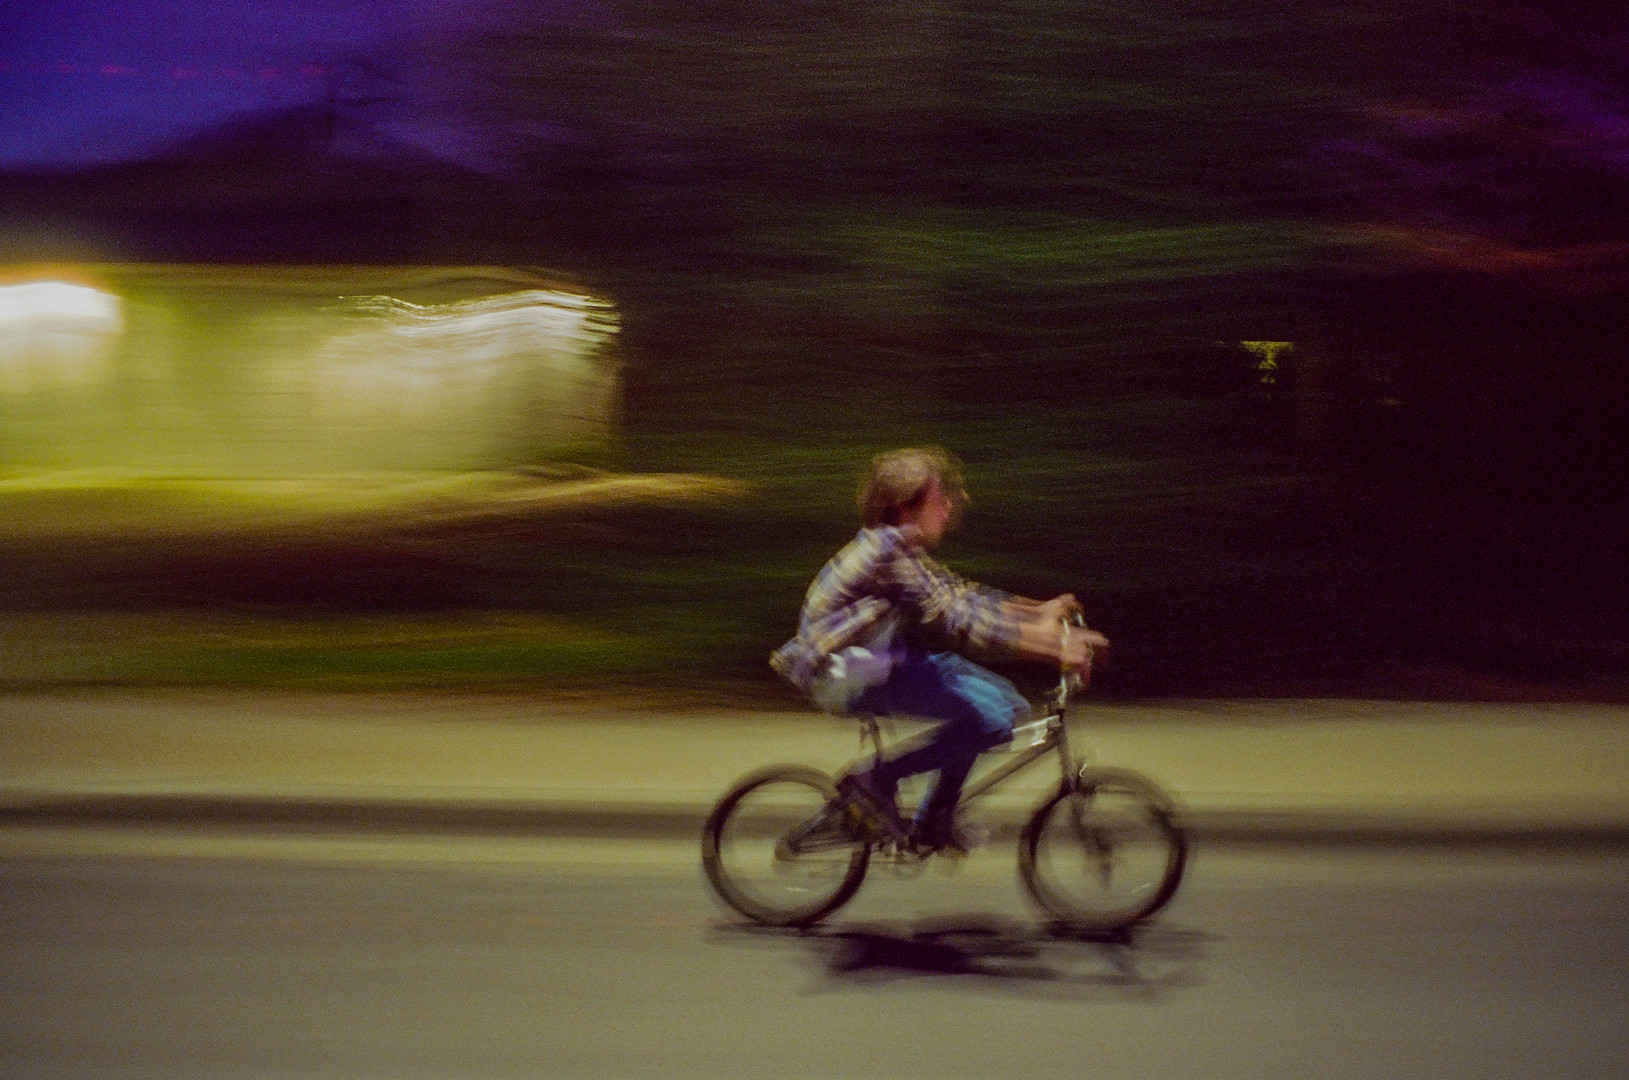 daniel, our protagonist, on his bike